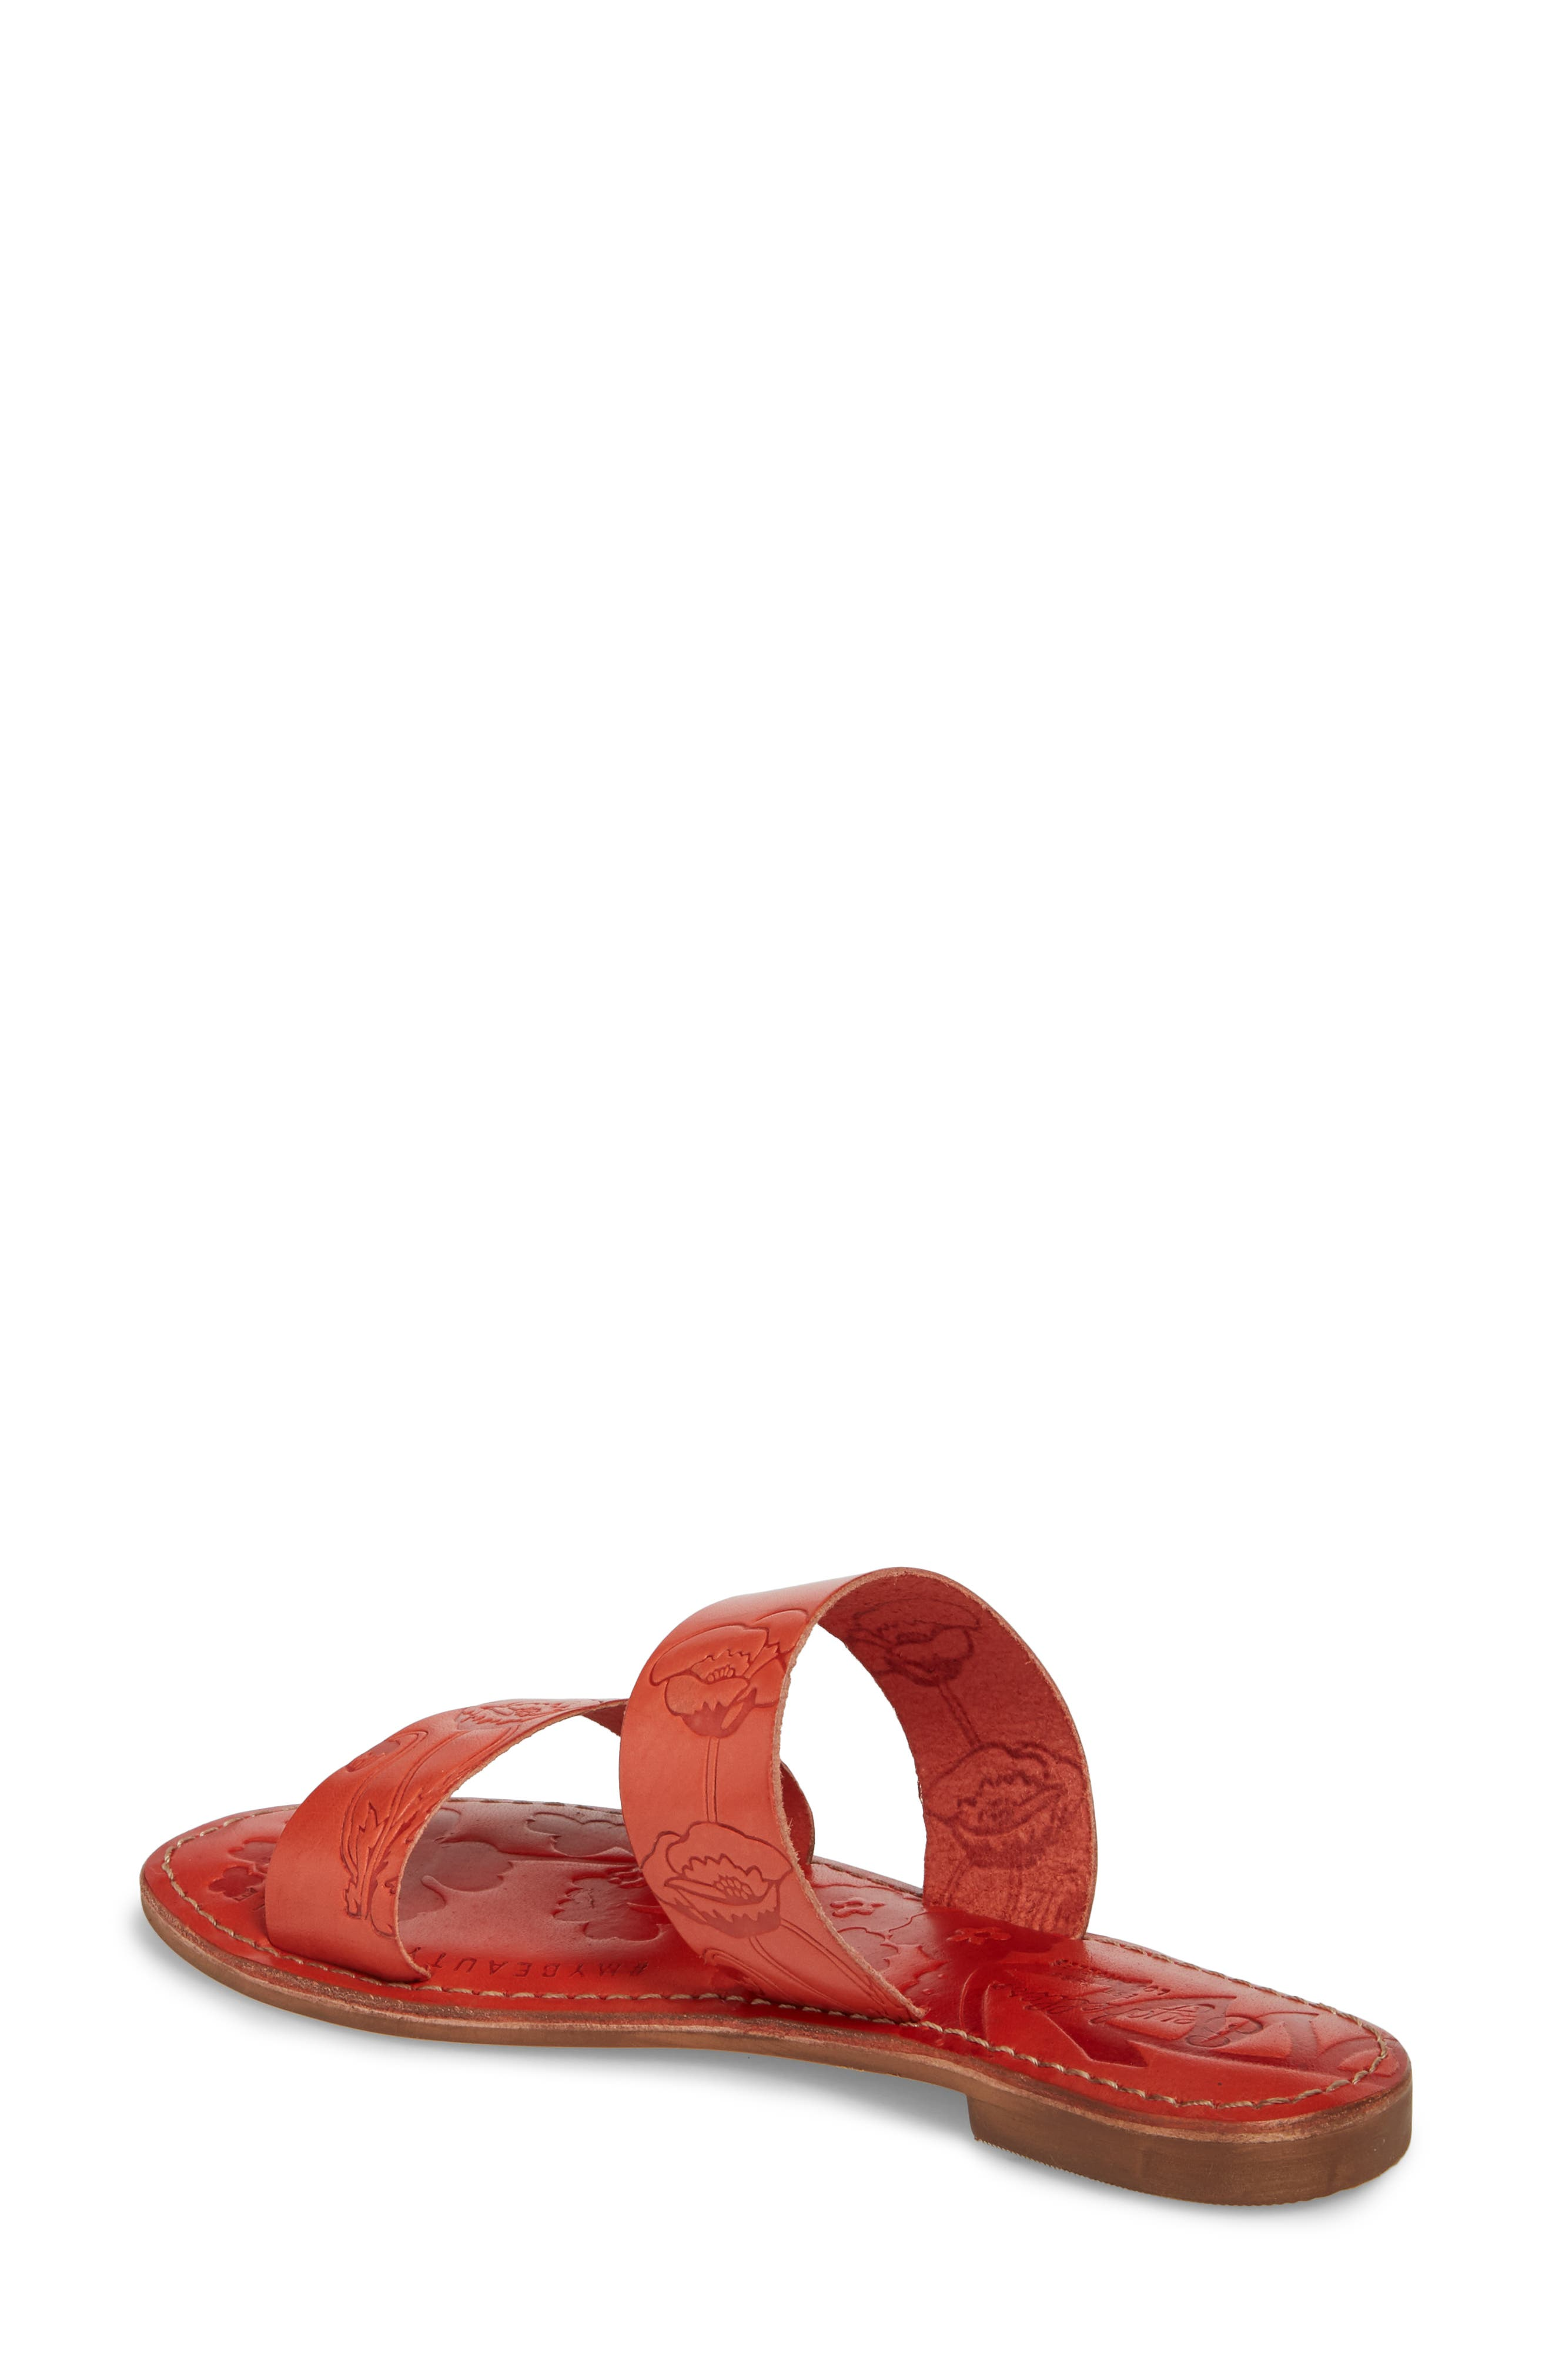 Sheroes Slide Sandal,                             Alternate thumbnail 2, color,                             Red Leather